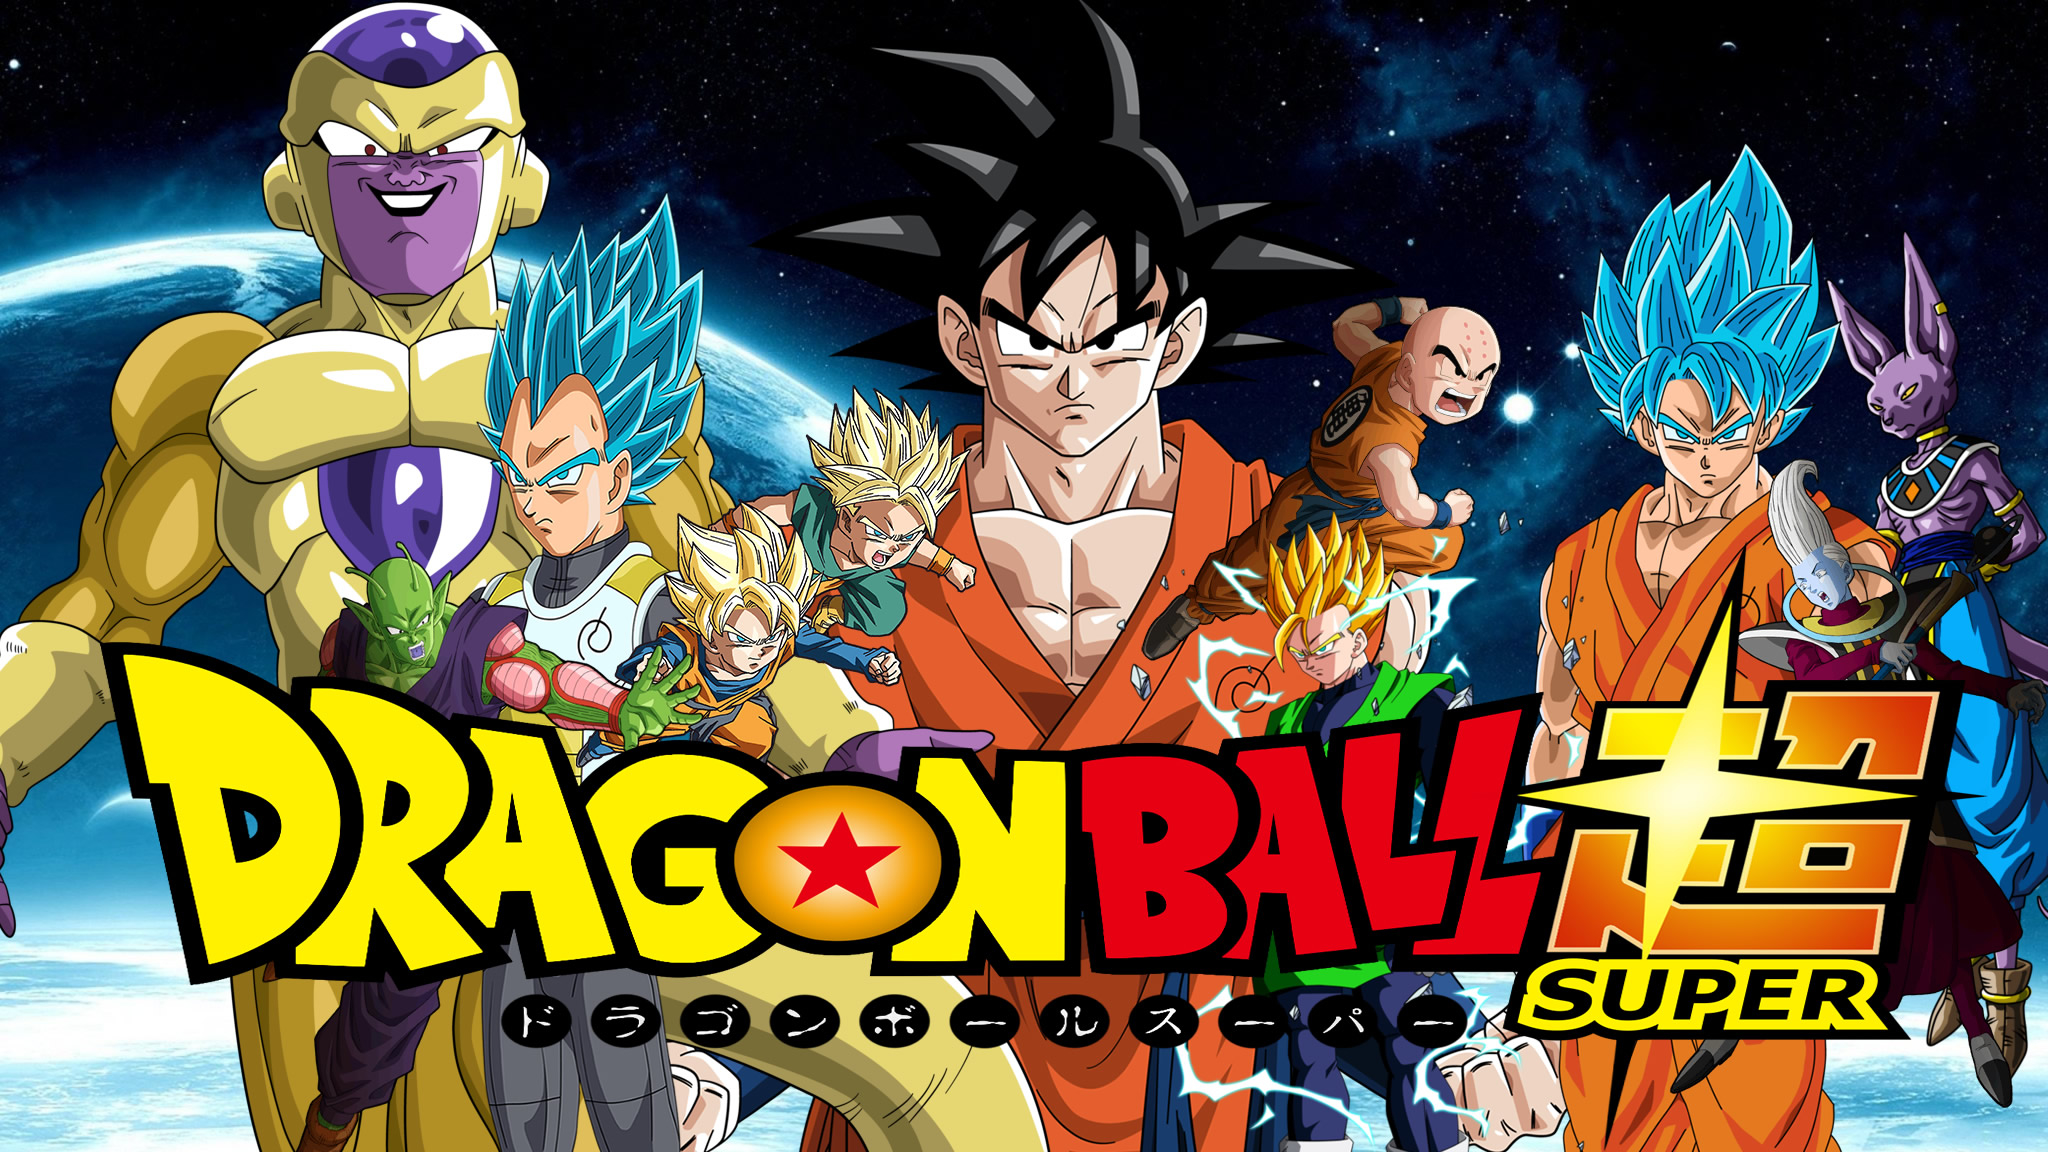 Does Dragon Ball Xenoverse Belong in the Video Game Canon?